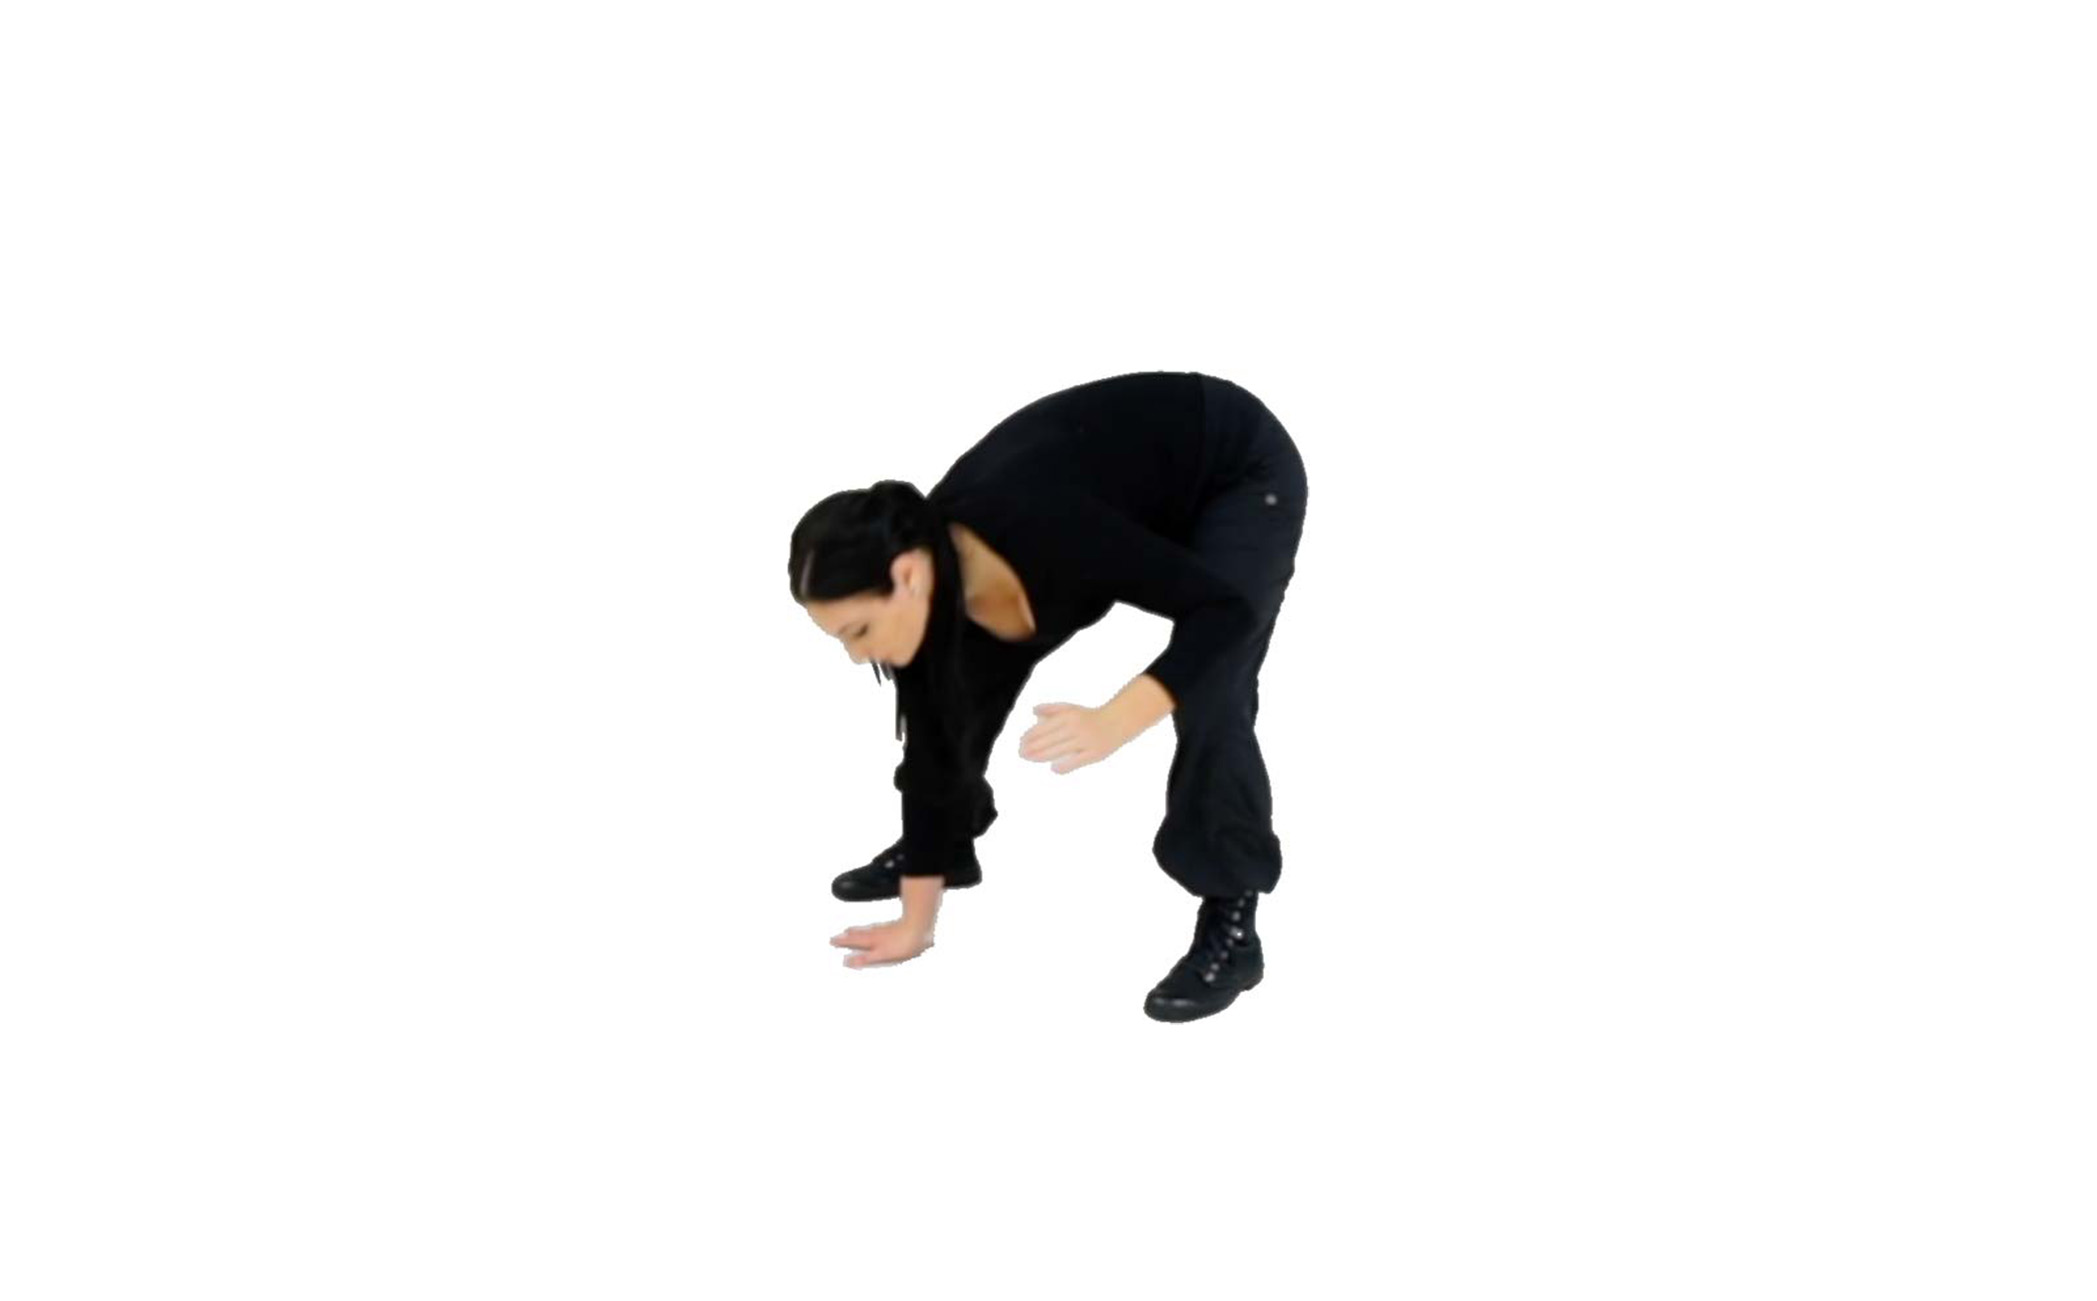 Step 3 - Bend your knee and drive your kicking leg backward so that it is behind your supporting hand on the ground, and plant your foot.